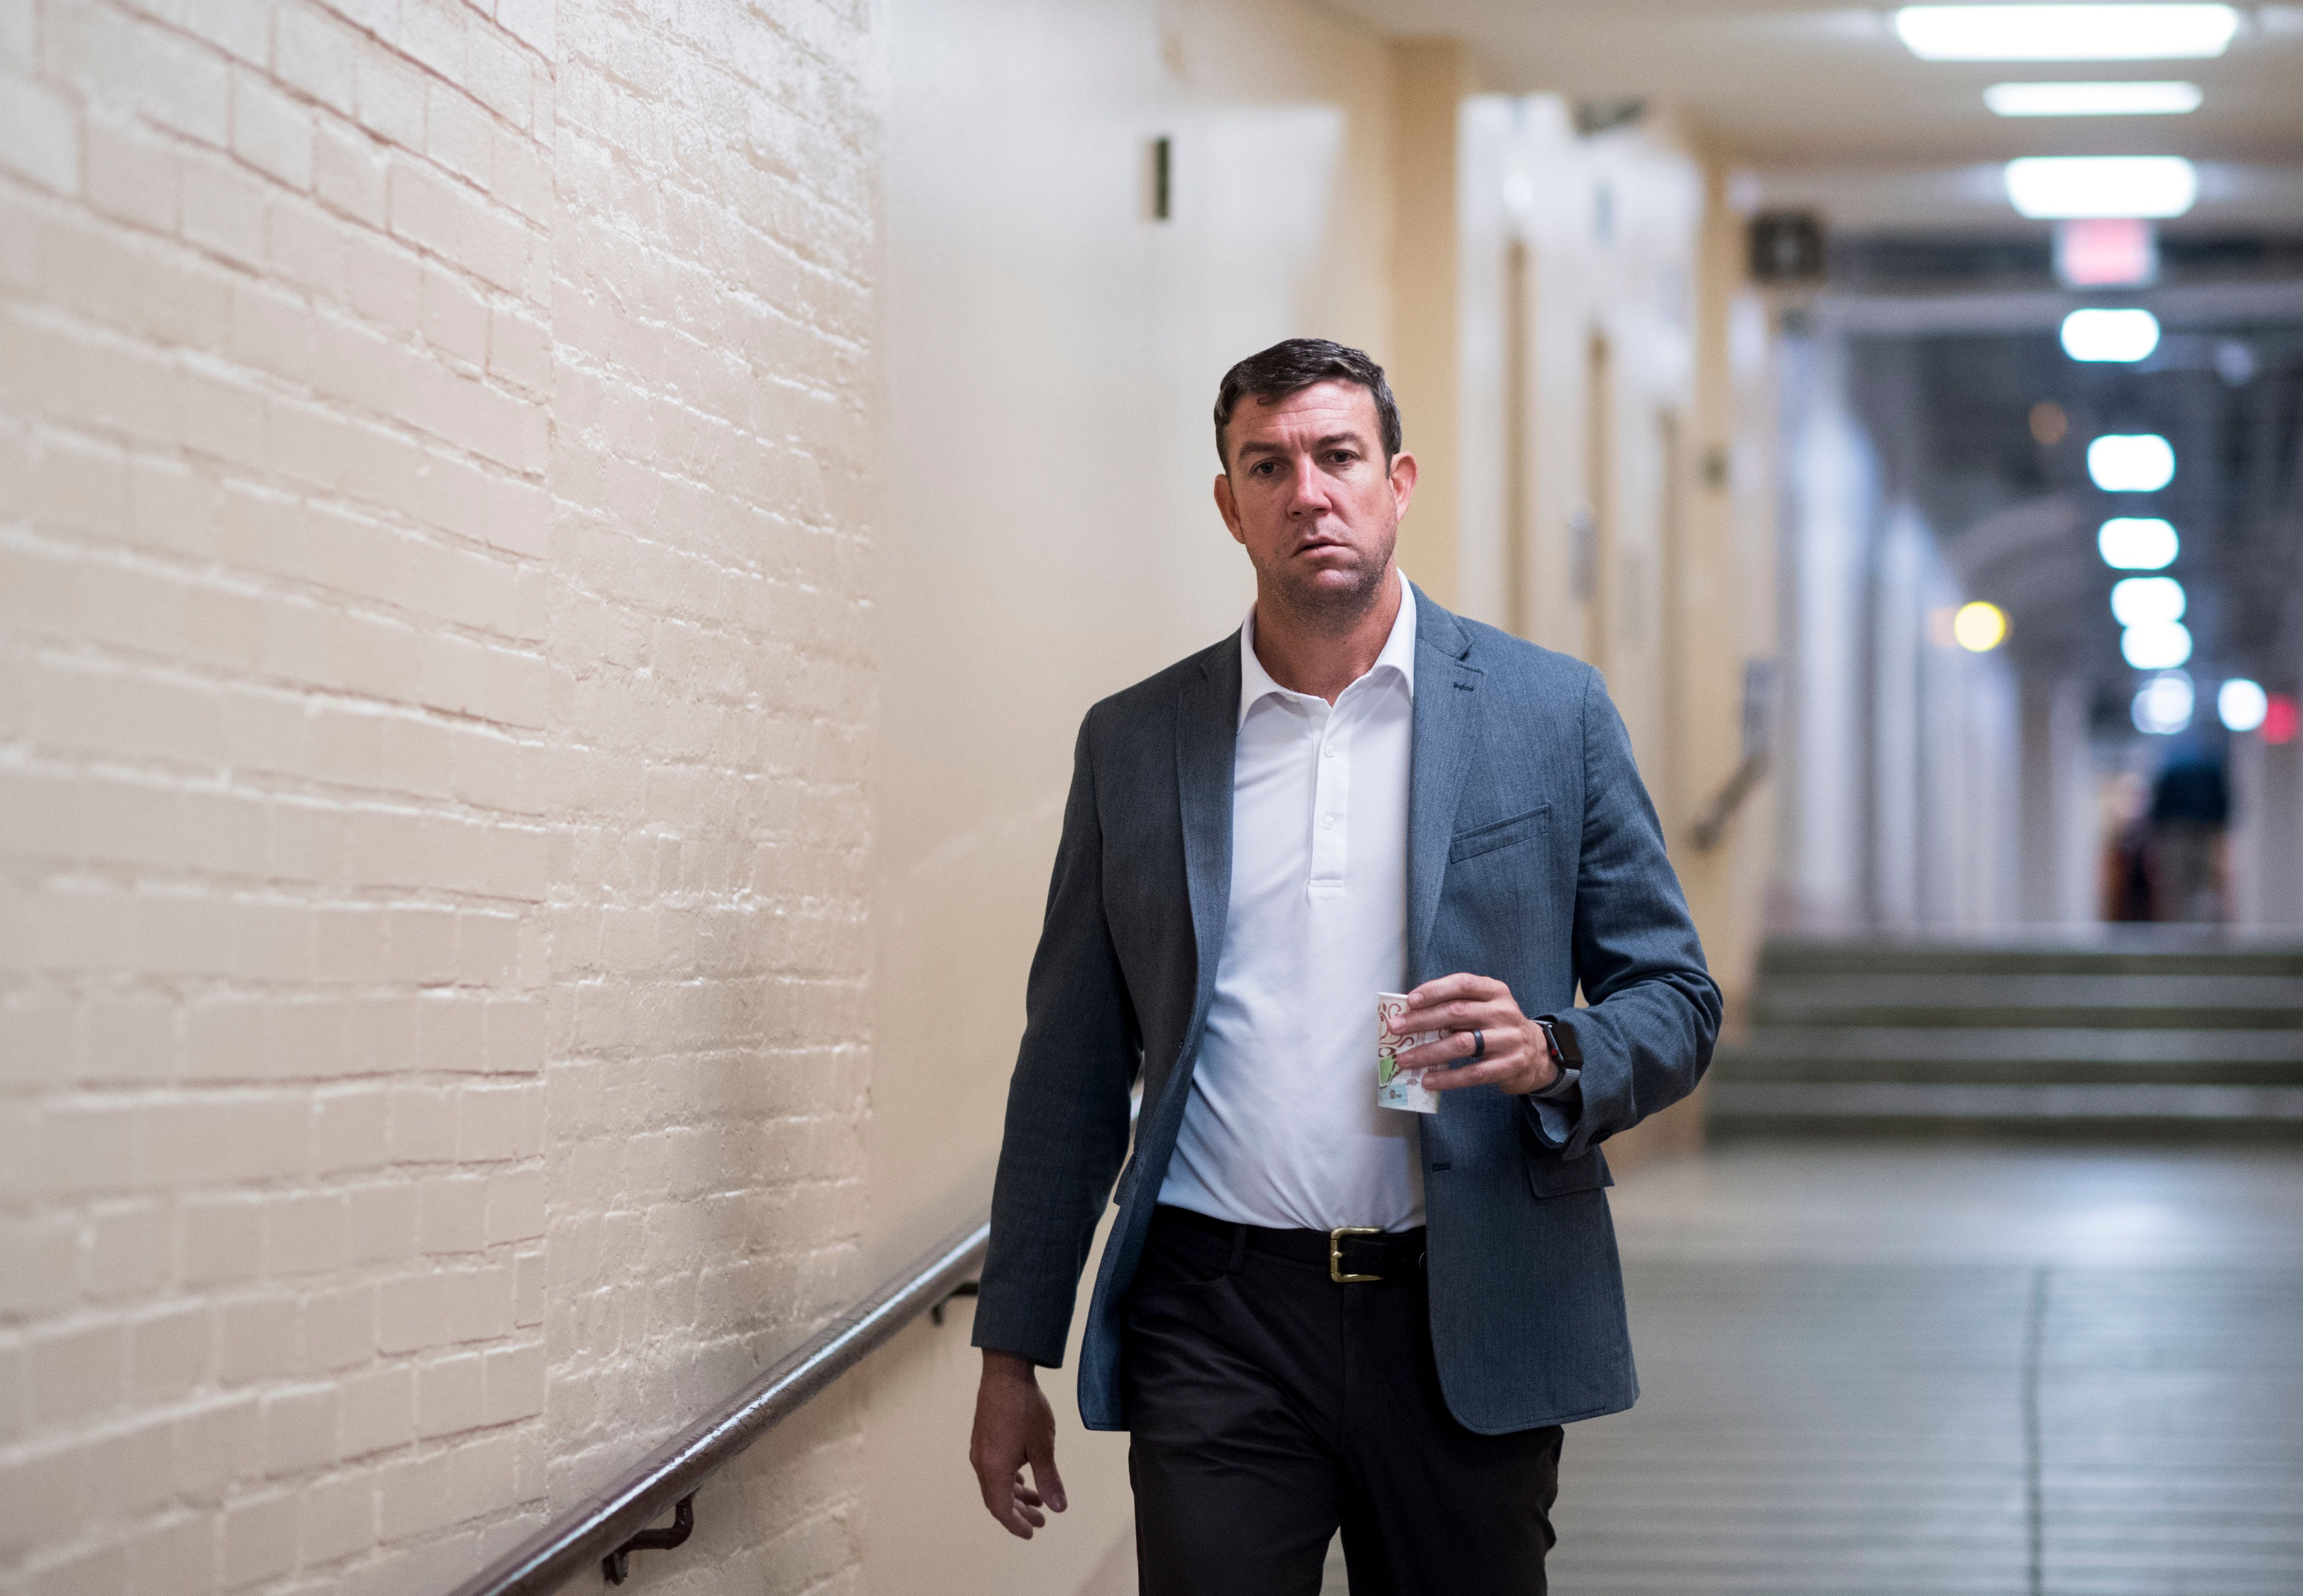 UNITED STATES - JANUARY 22: Rep. Duncan Hunter, R-Calif., arrives for the House Republican Conference meeting in the Capitol on Monday, Jan. 22, 2018. (Photo By Bill Clark/CQ Roll Call)